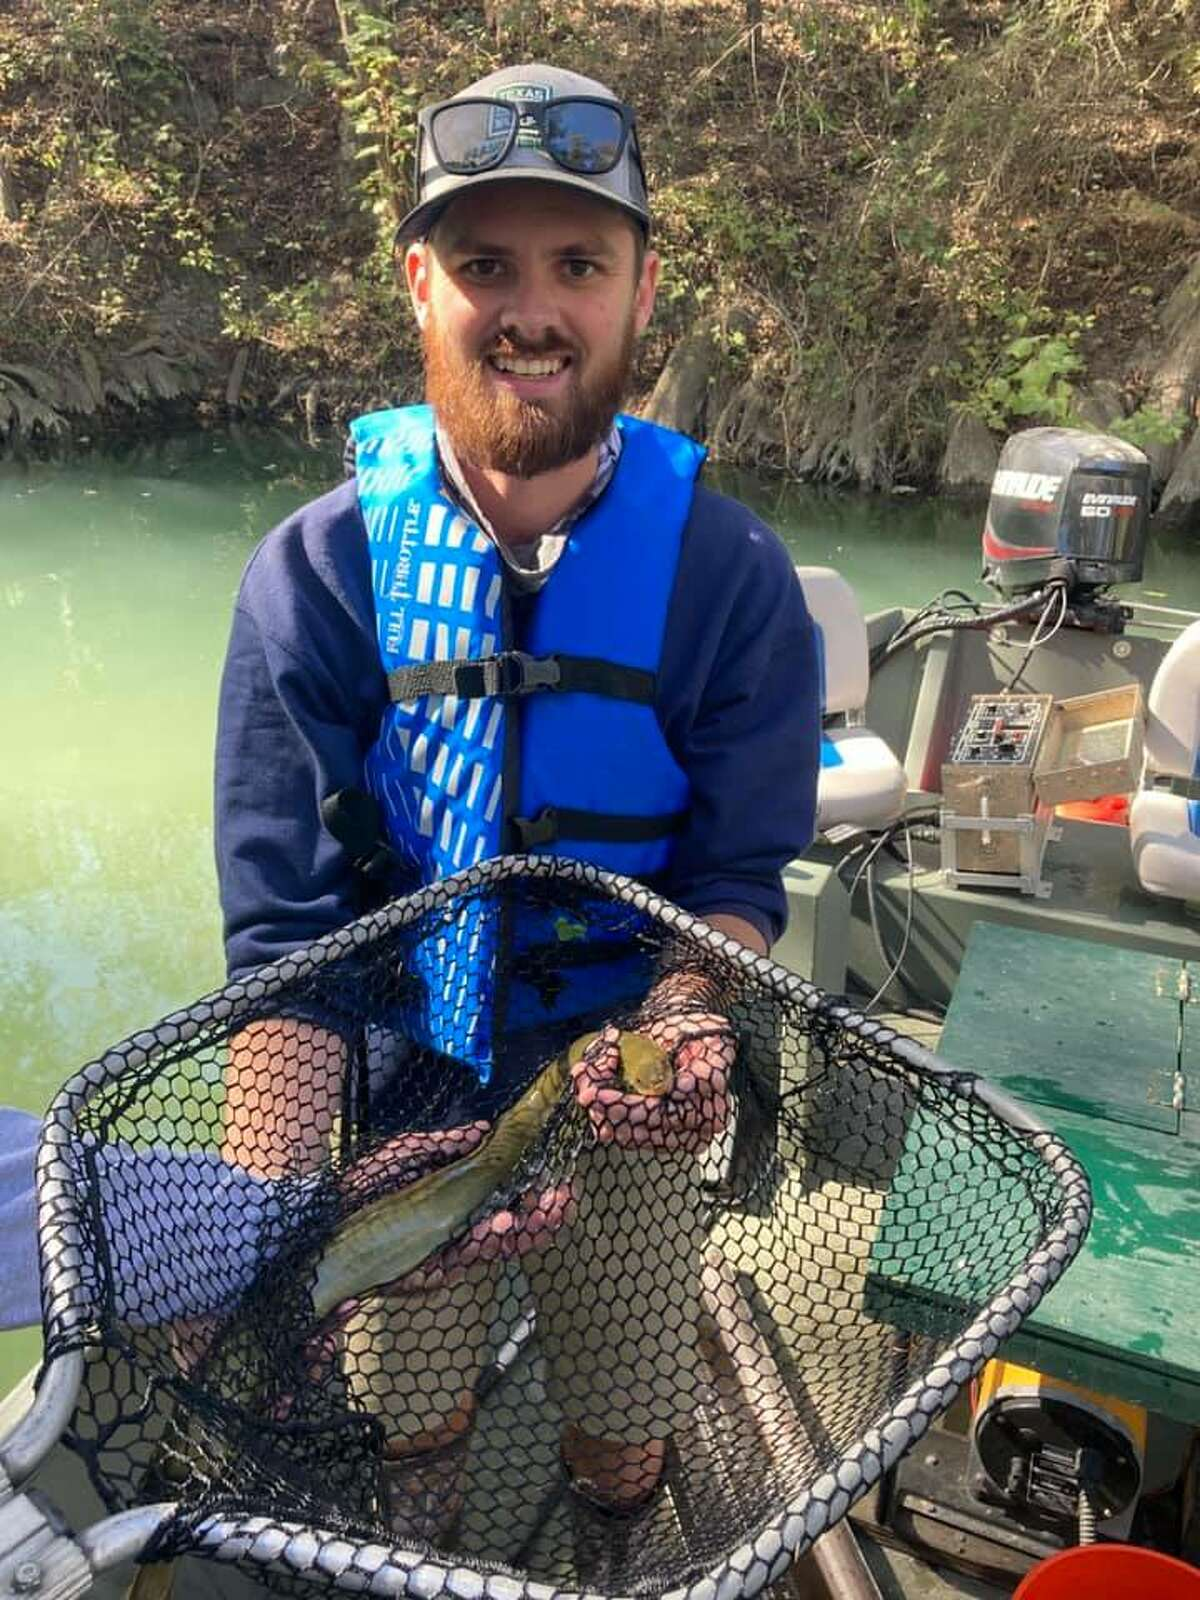 Staff members at Inland Fisheries San Antonio District said they caught and released their first-ever America eel at Media River during a recent Guadalupe Bass survey conducted earlier this month.